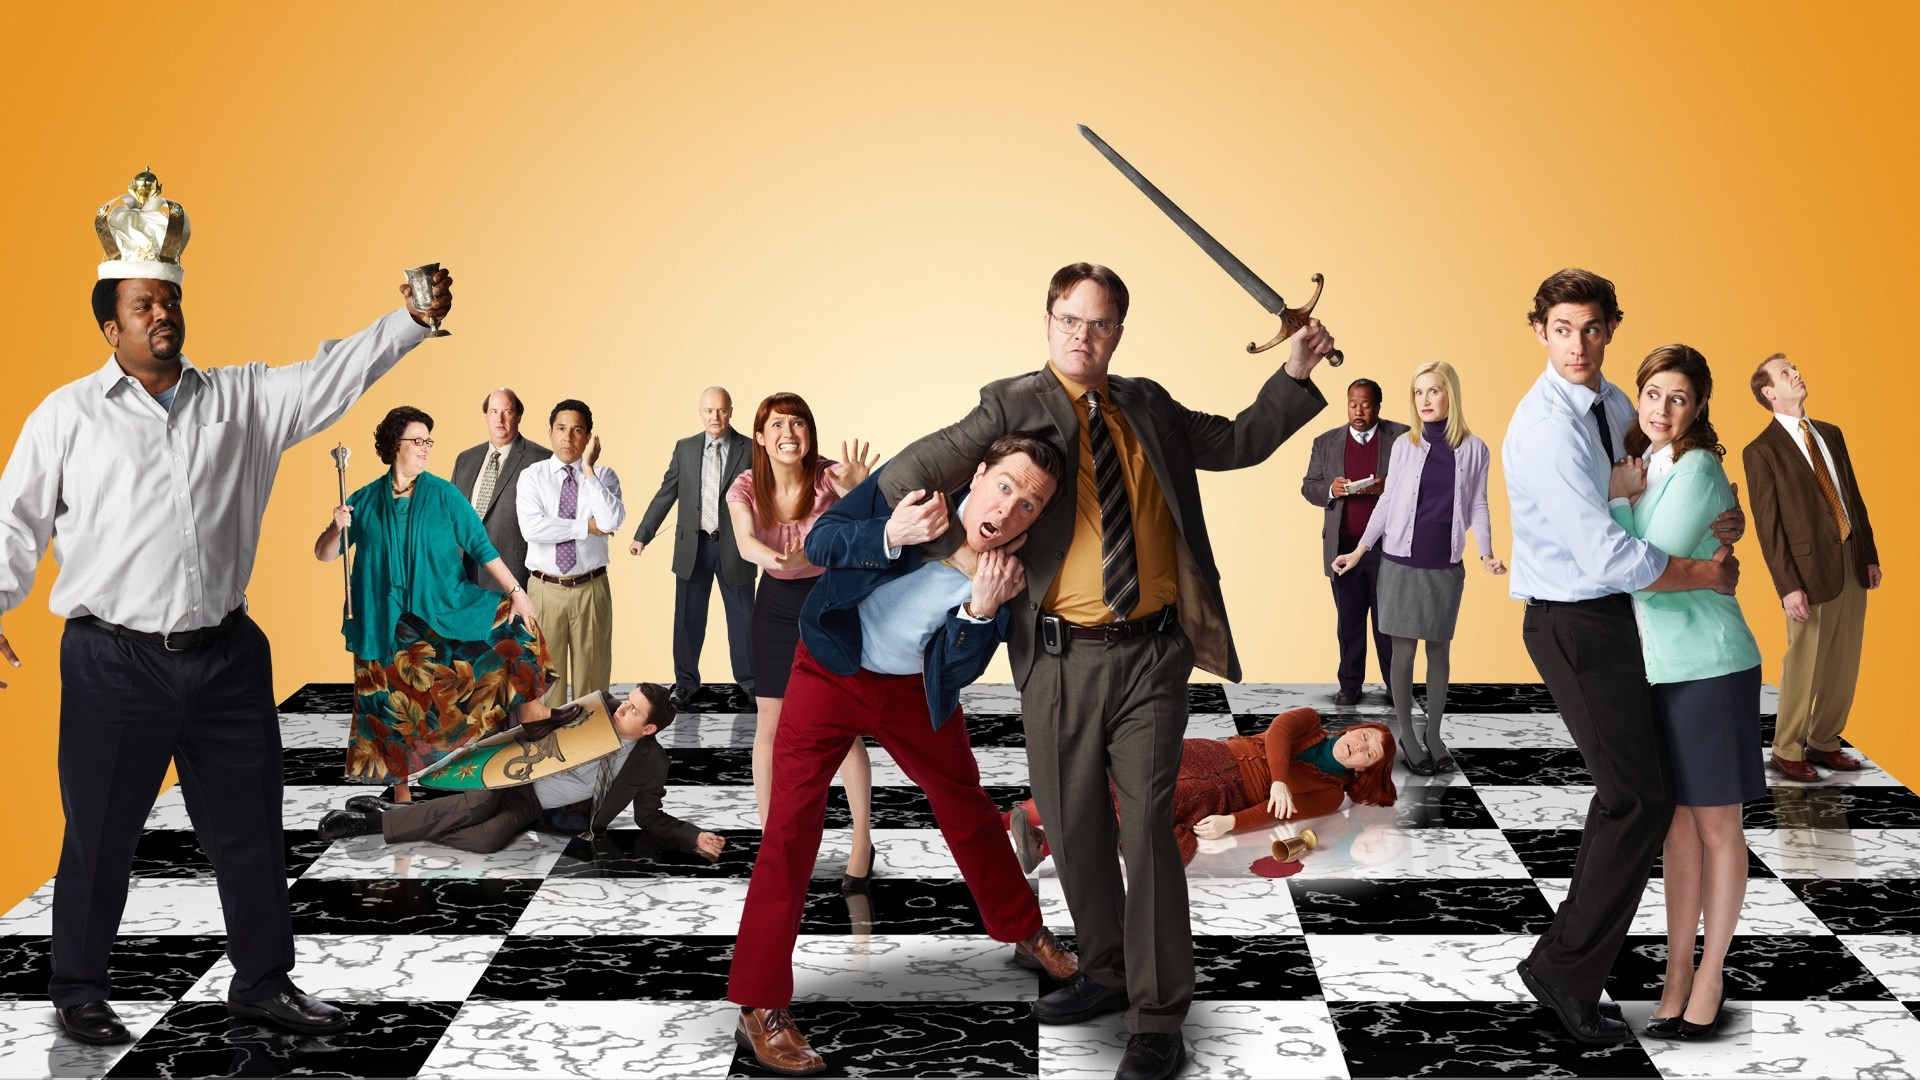 widescreen backgrounds the office us